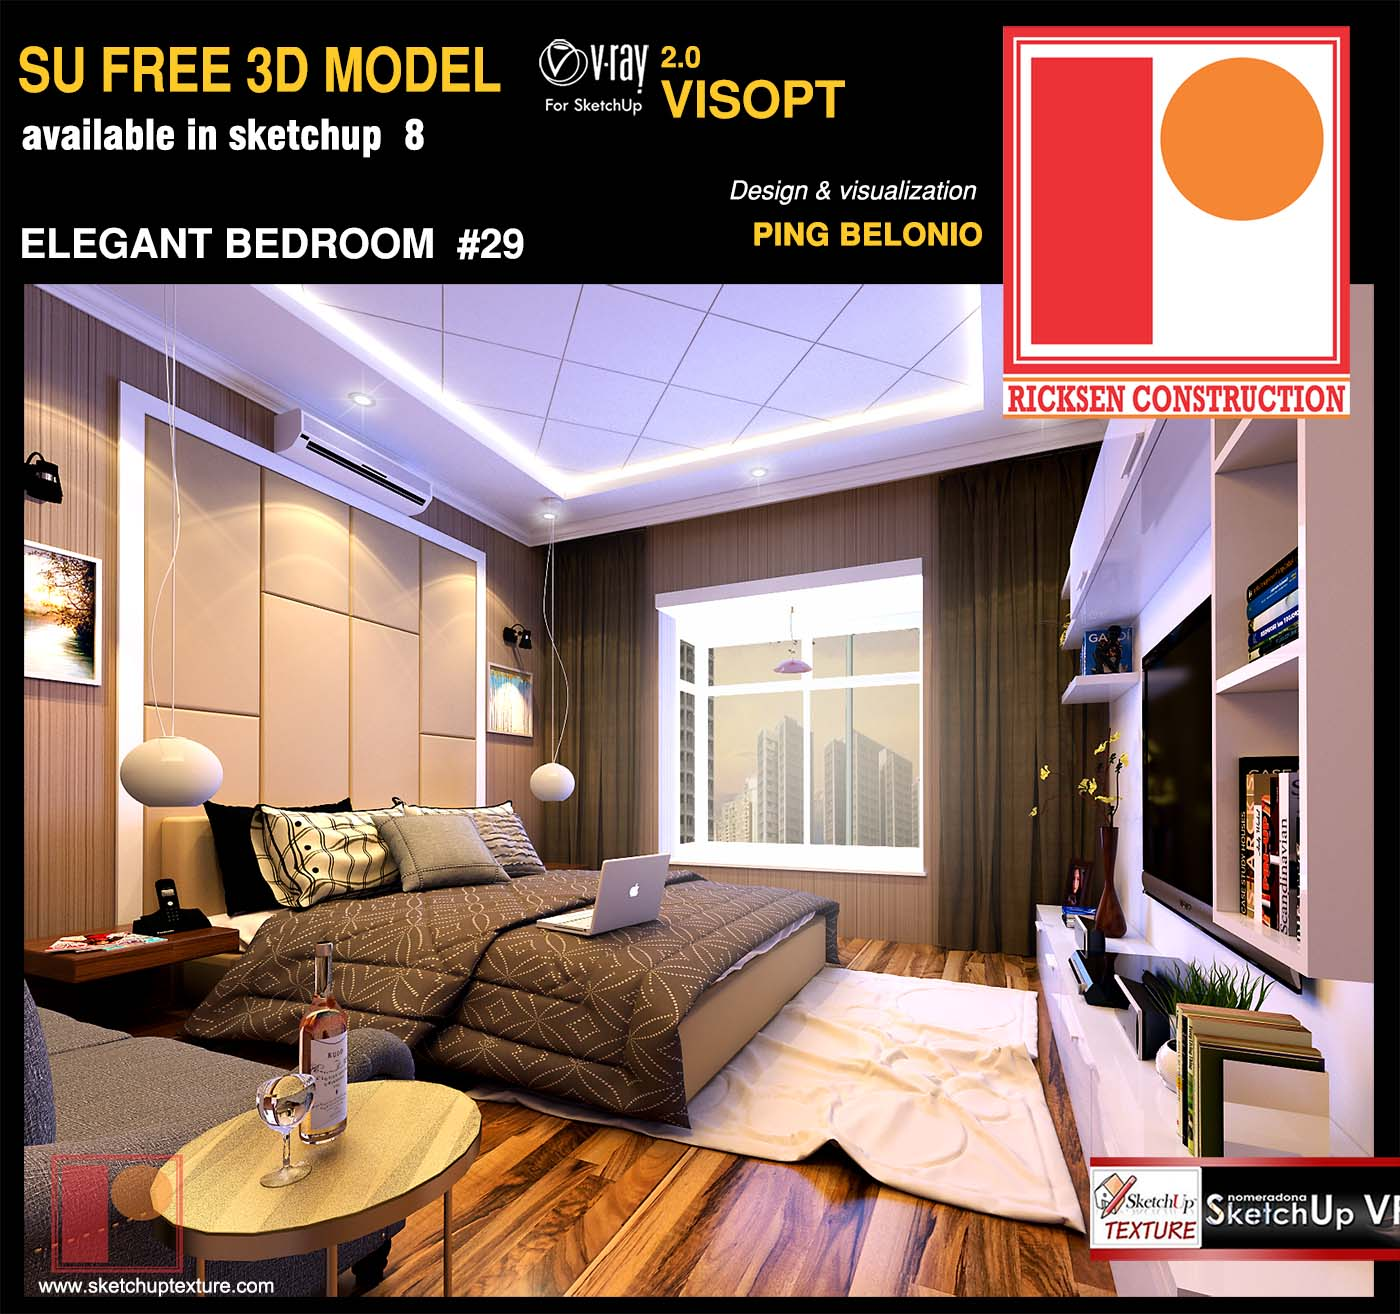 free Sketchup Model elegant Bedroom by Ping Belonio vray interior visopt. SKETCHUP TEXTURE  SKETCHUP MODEL BEDROOM